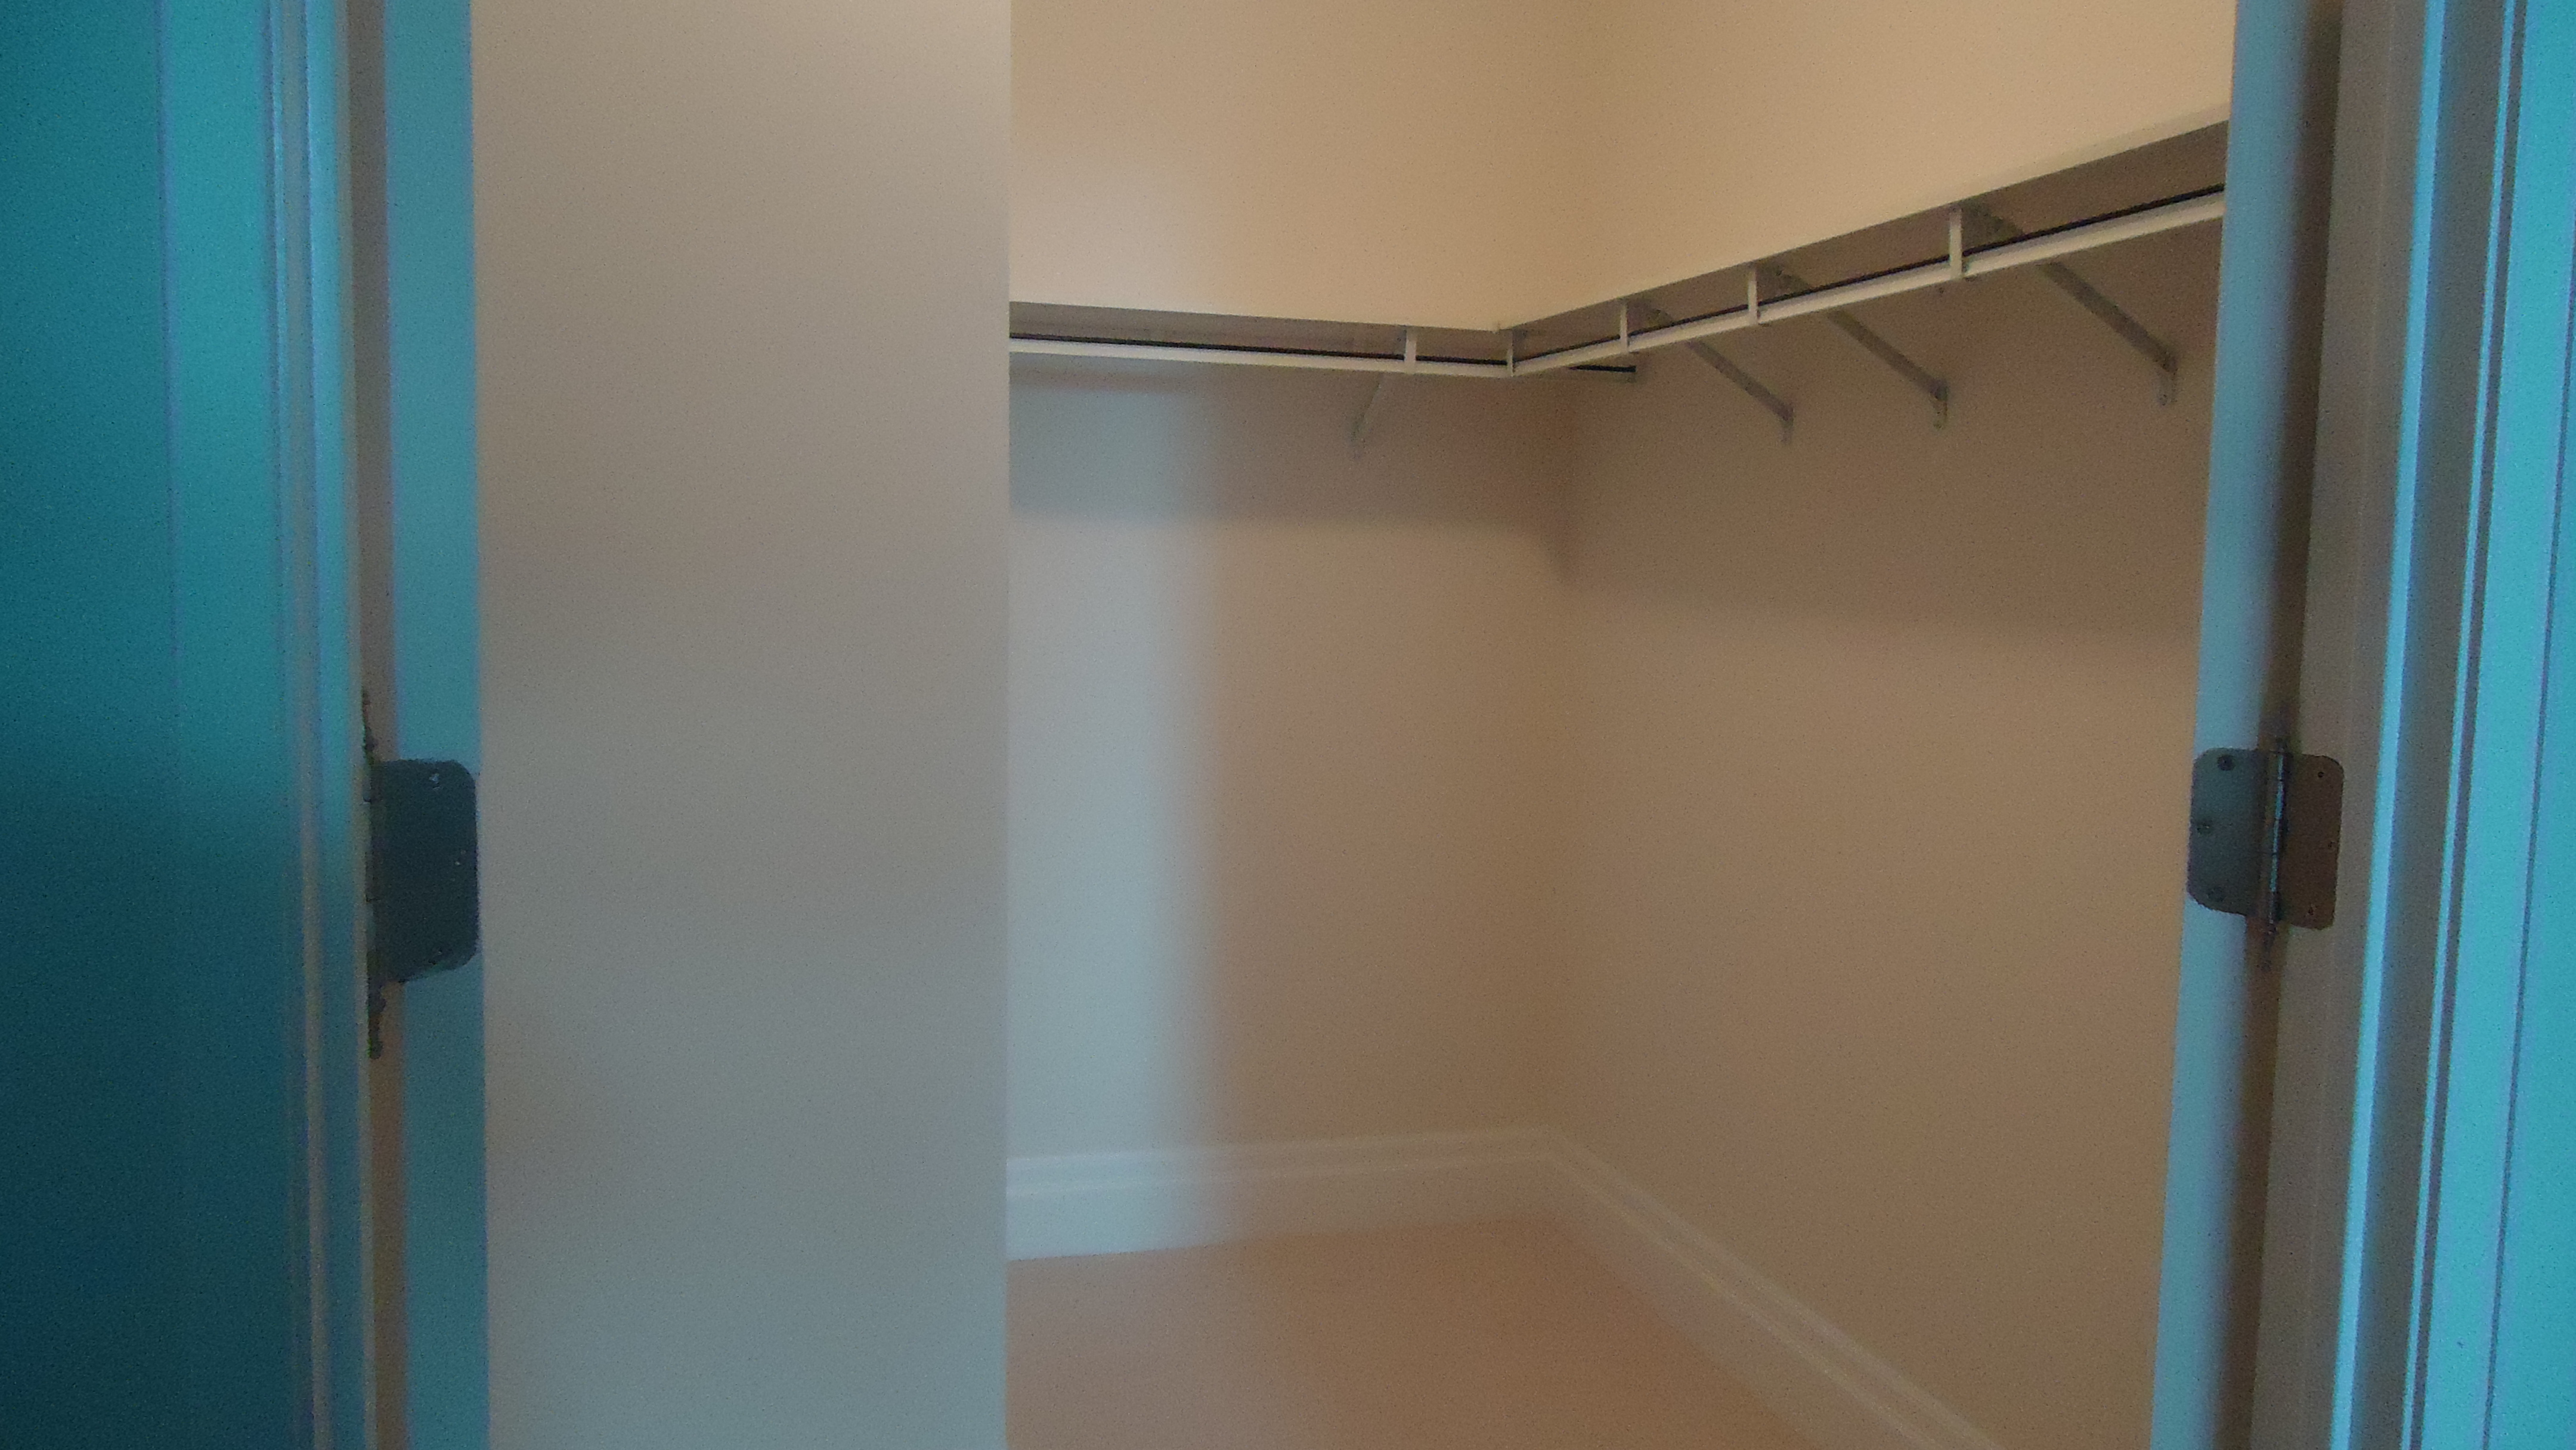 Diy Closet Shelves And Rods : Building A Custom Walk In Closet Small Space  Style